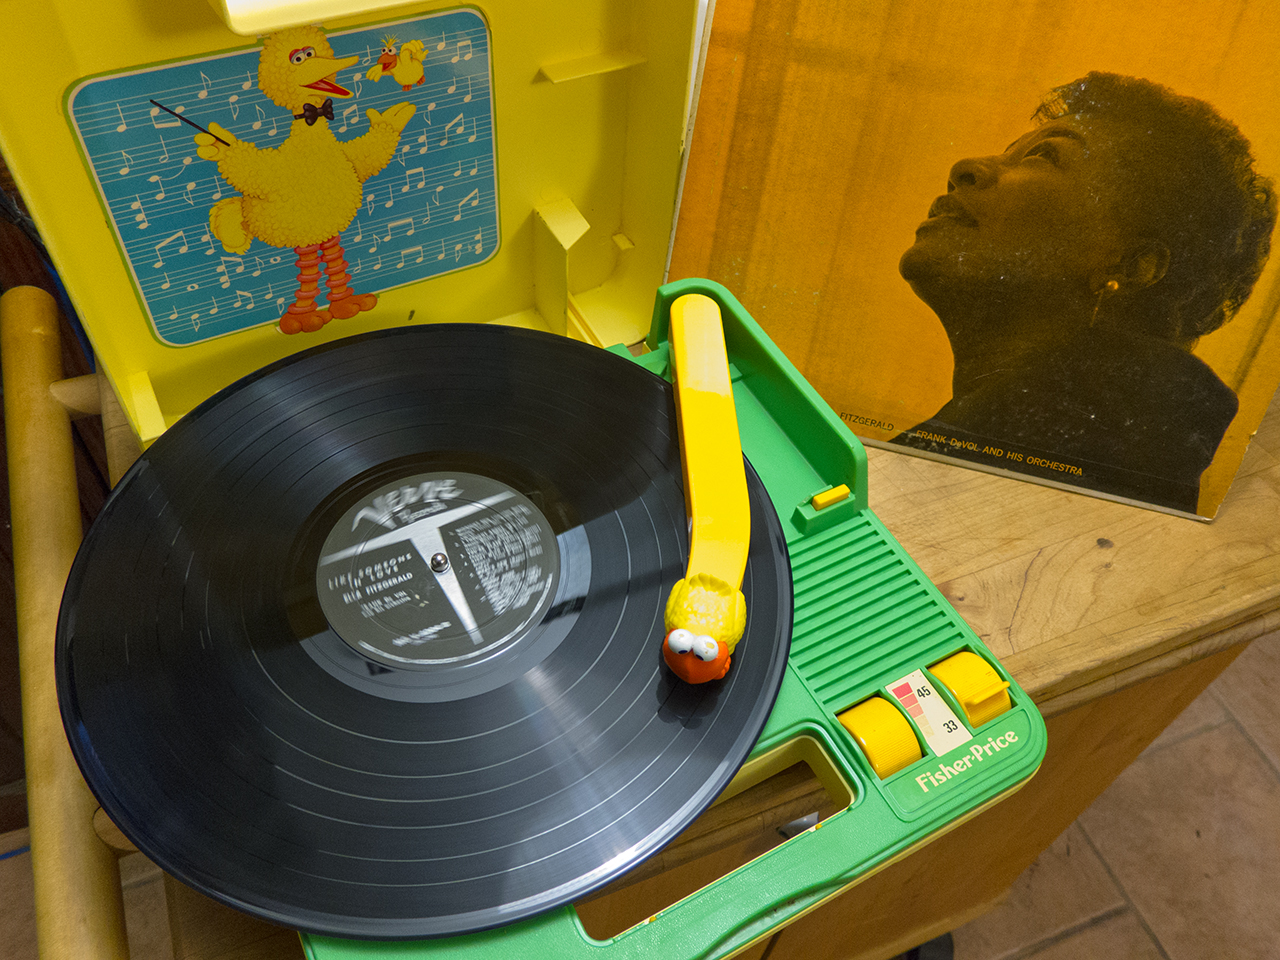 Fisher Price #816 Record Player Repairs – Zach Poff on